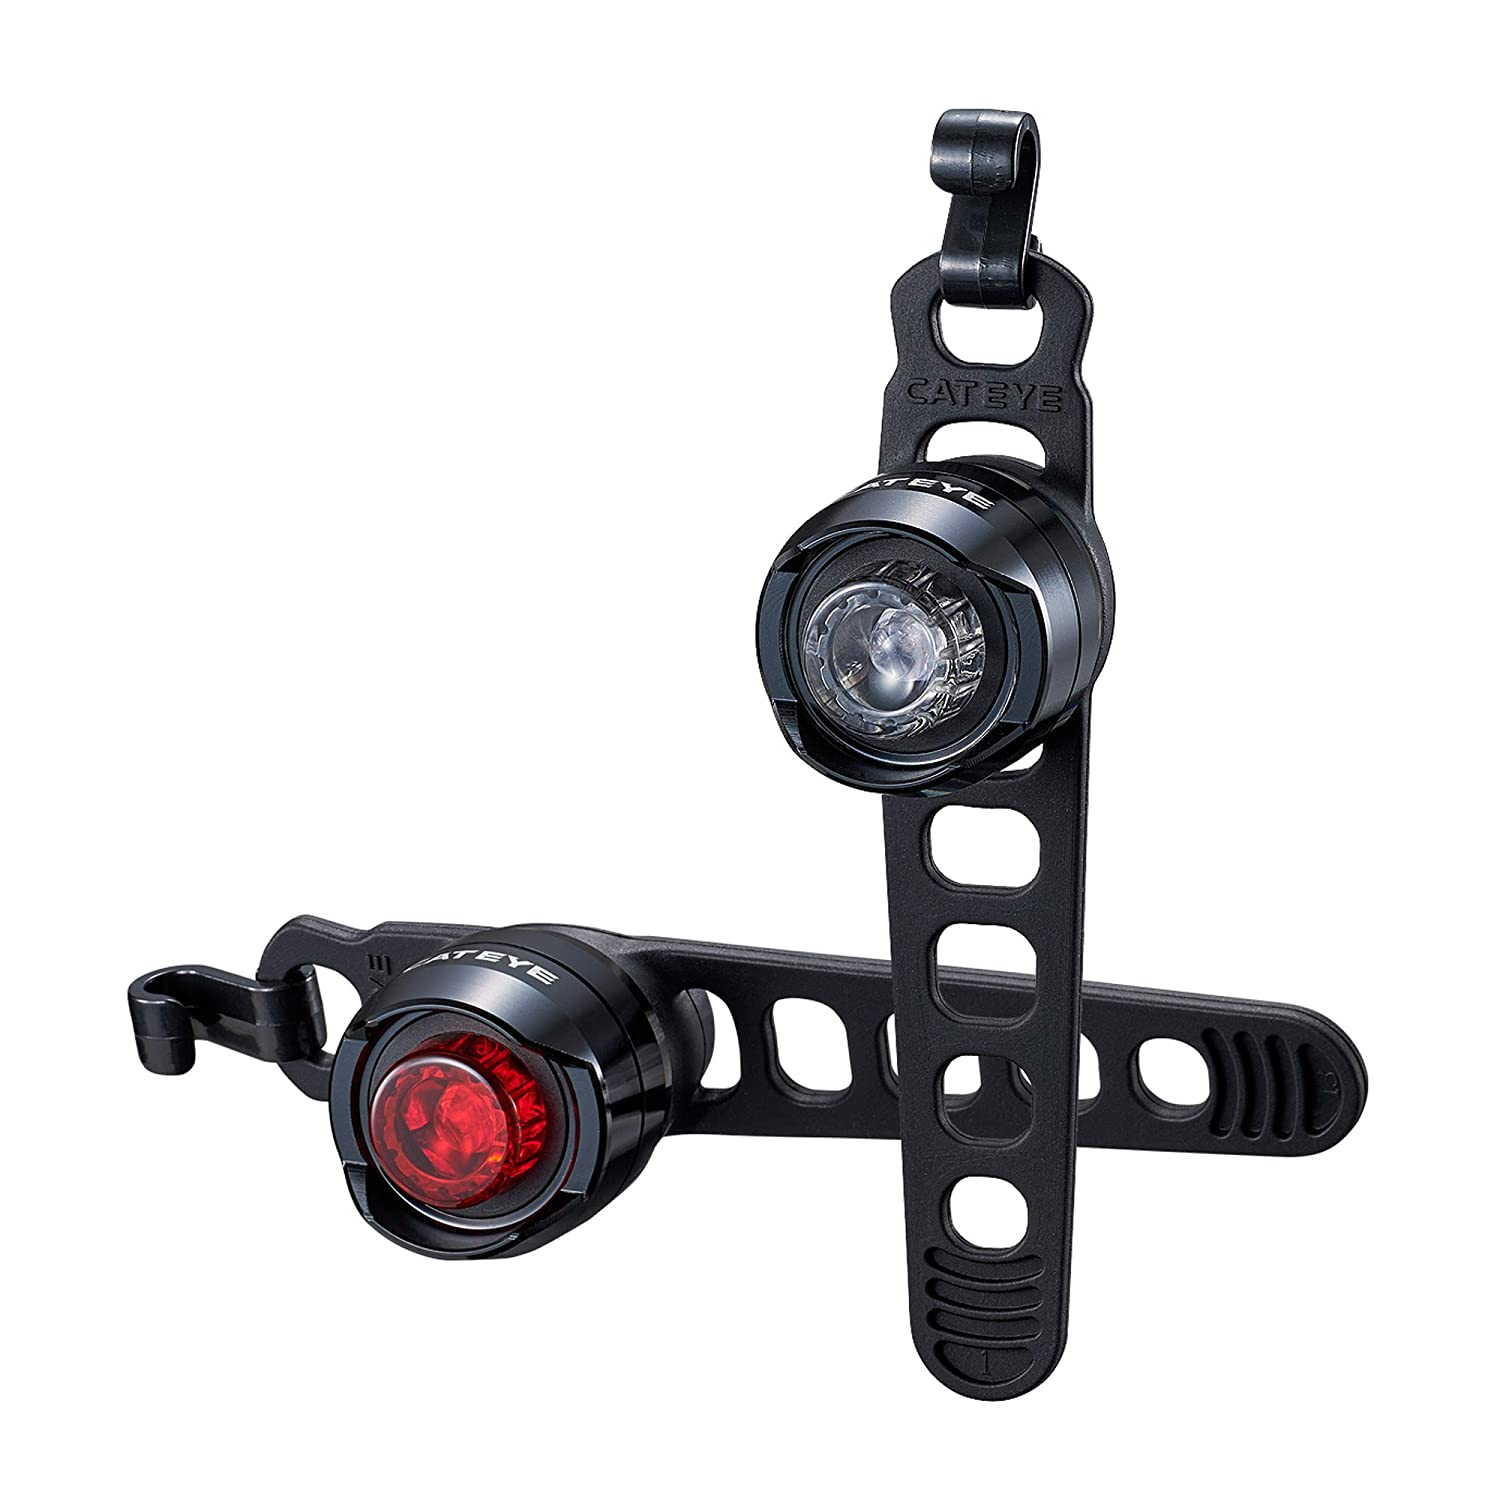 CAT EYE – ORB LED Bike Safety Light